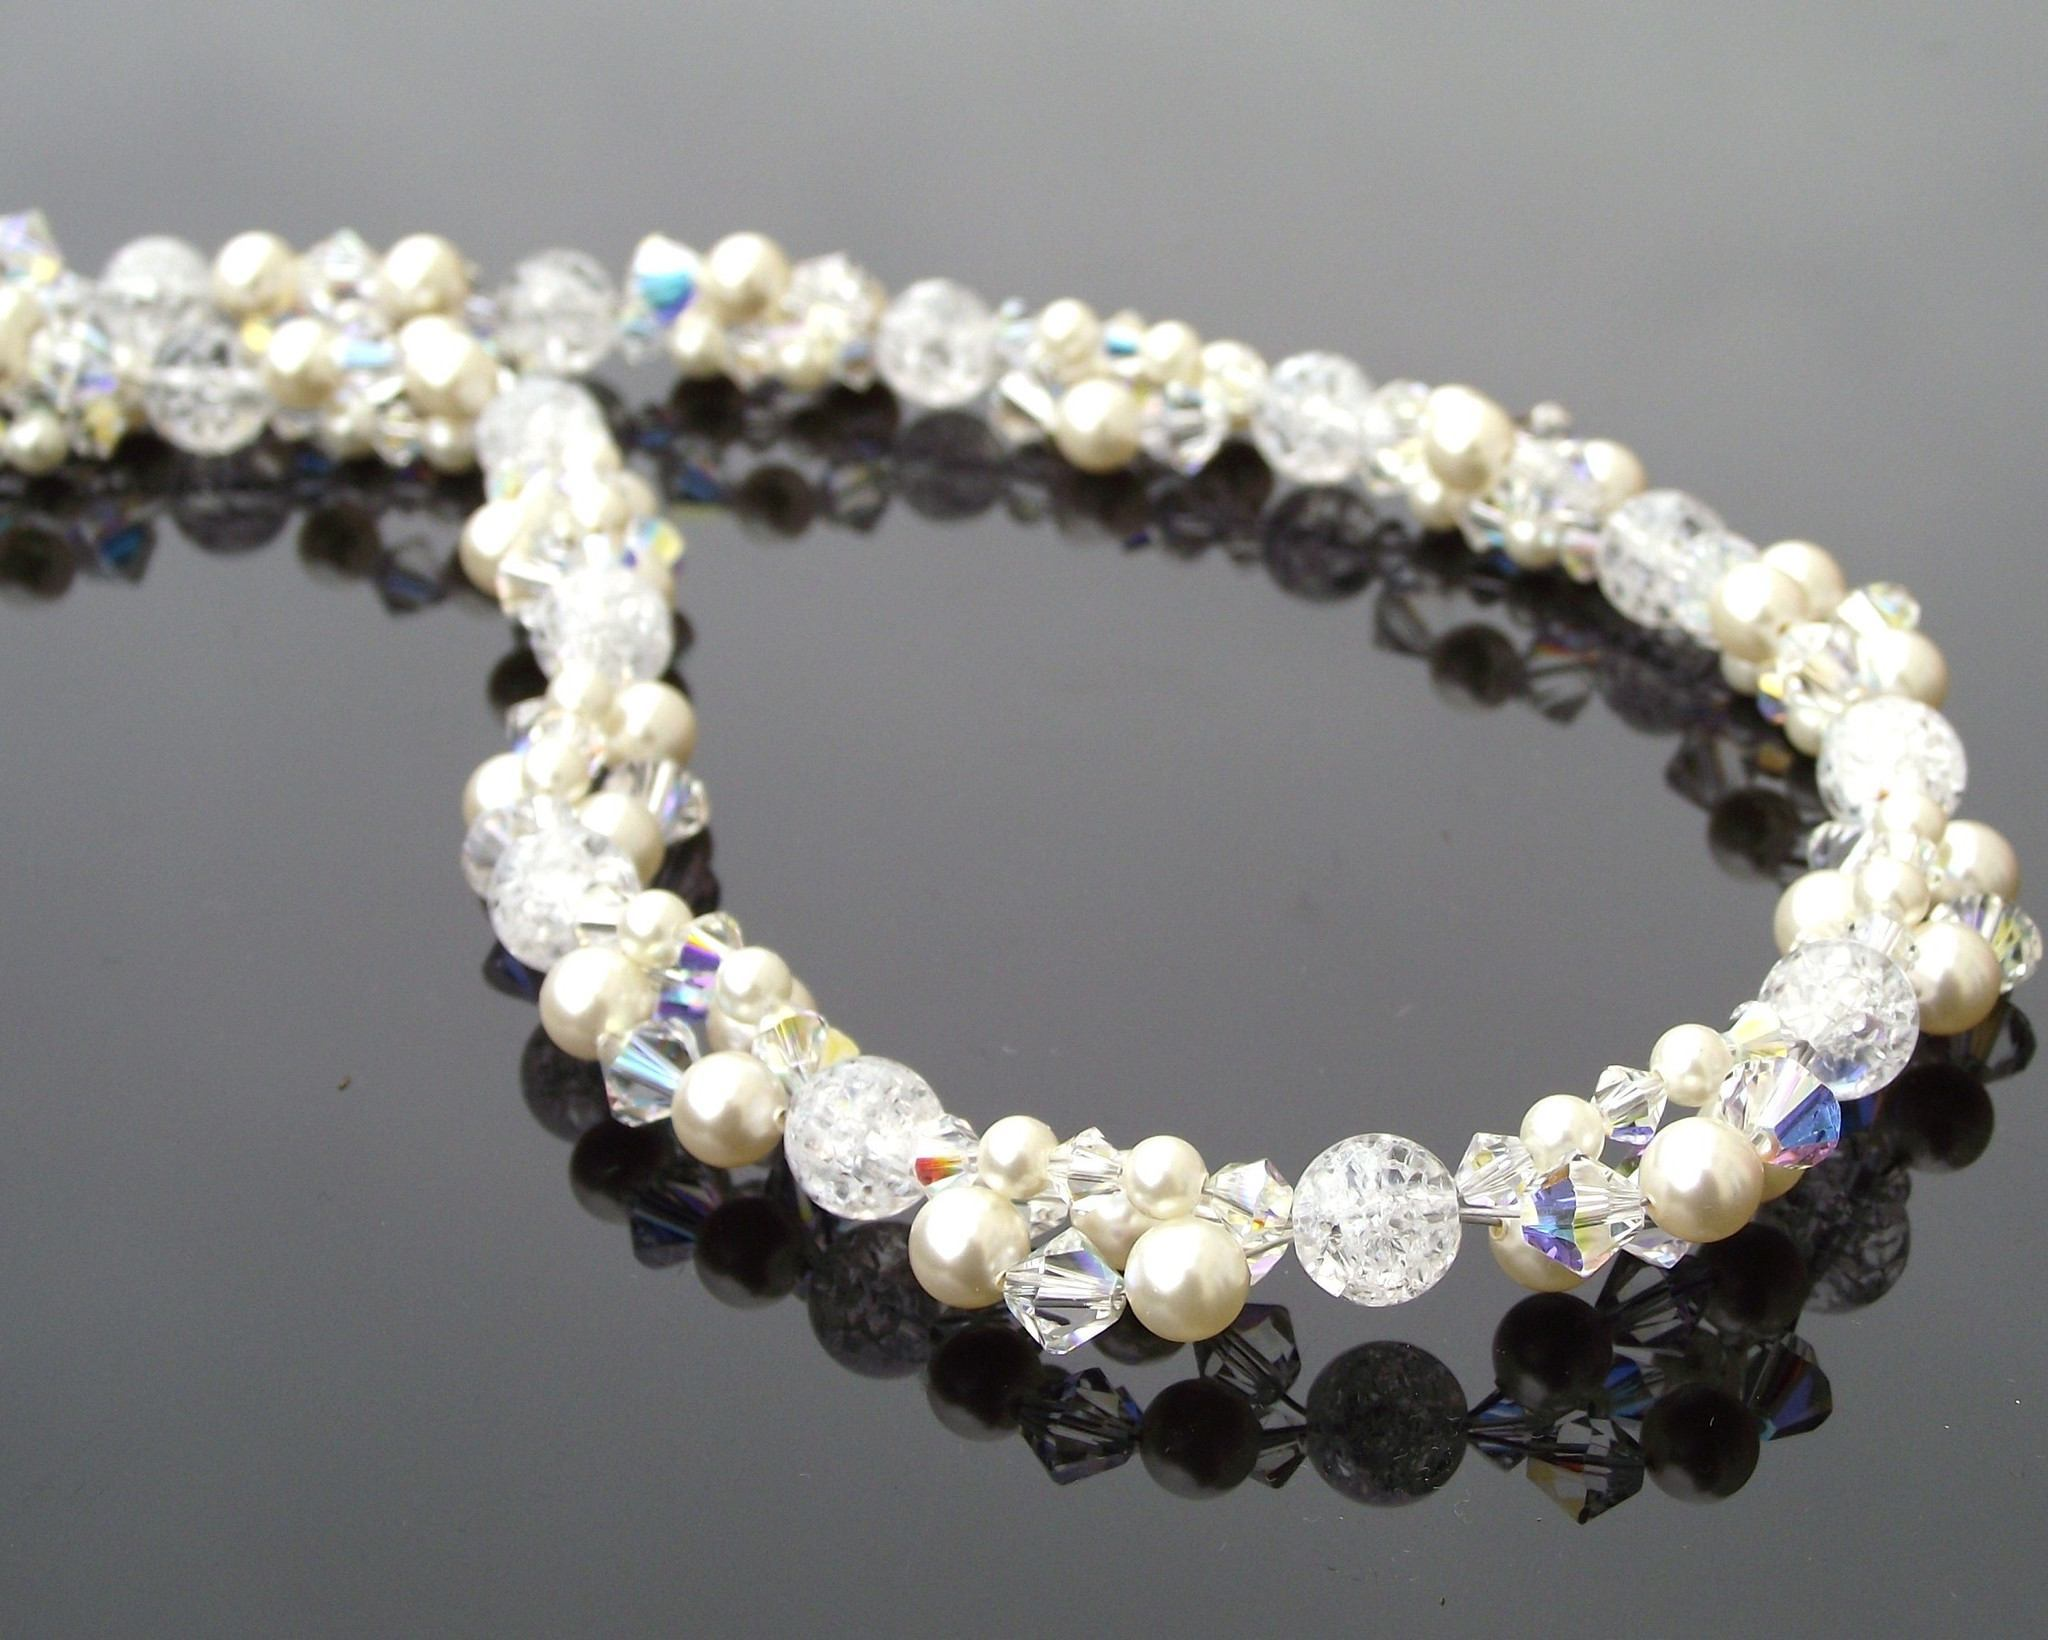 Wedding Necklace - Pearl & Crystal Cluster Beaded Bridal Necklace, Sicily